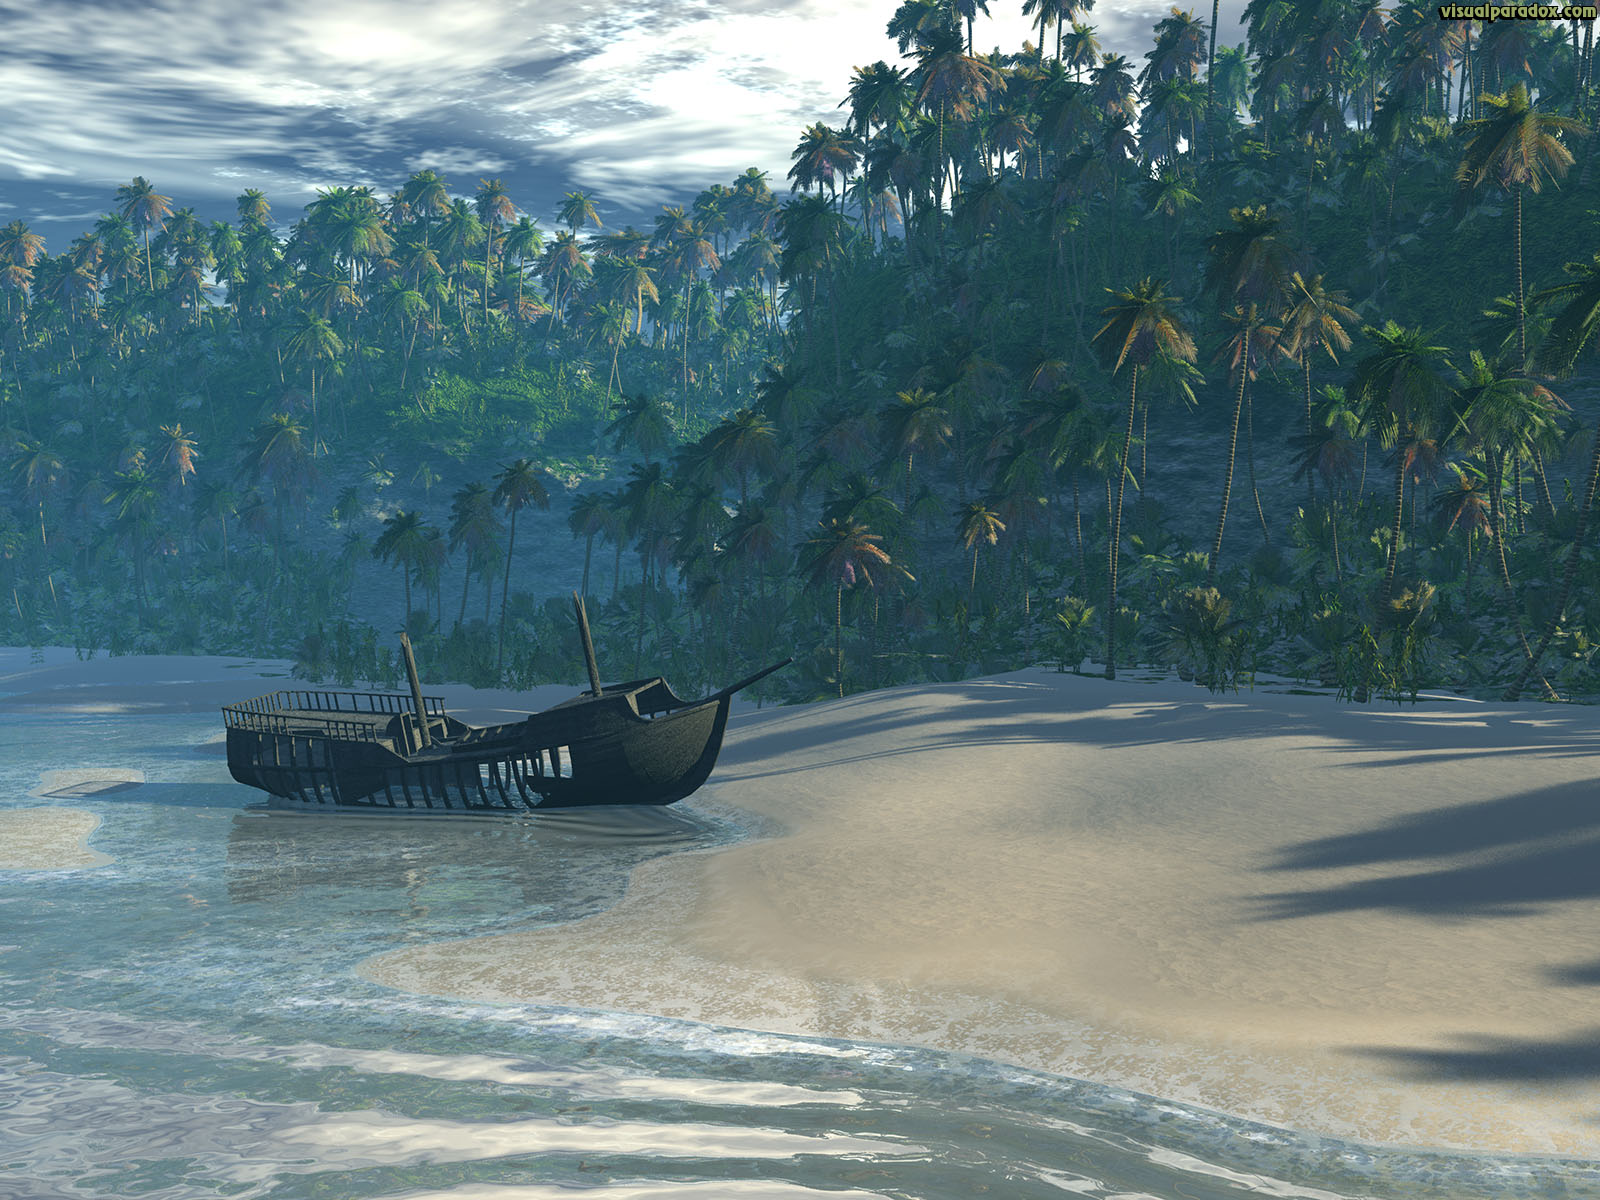 beach, boat, ocean, front, palm, trees, sea, waves, break, sand, ship, lost, marooned, castaway, cliff, tropical, 3d, wallpaper